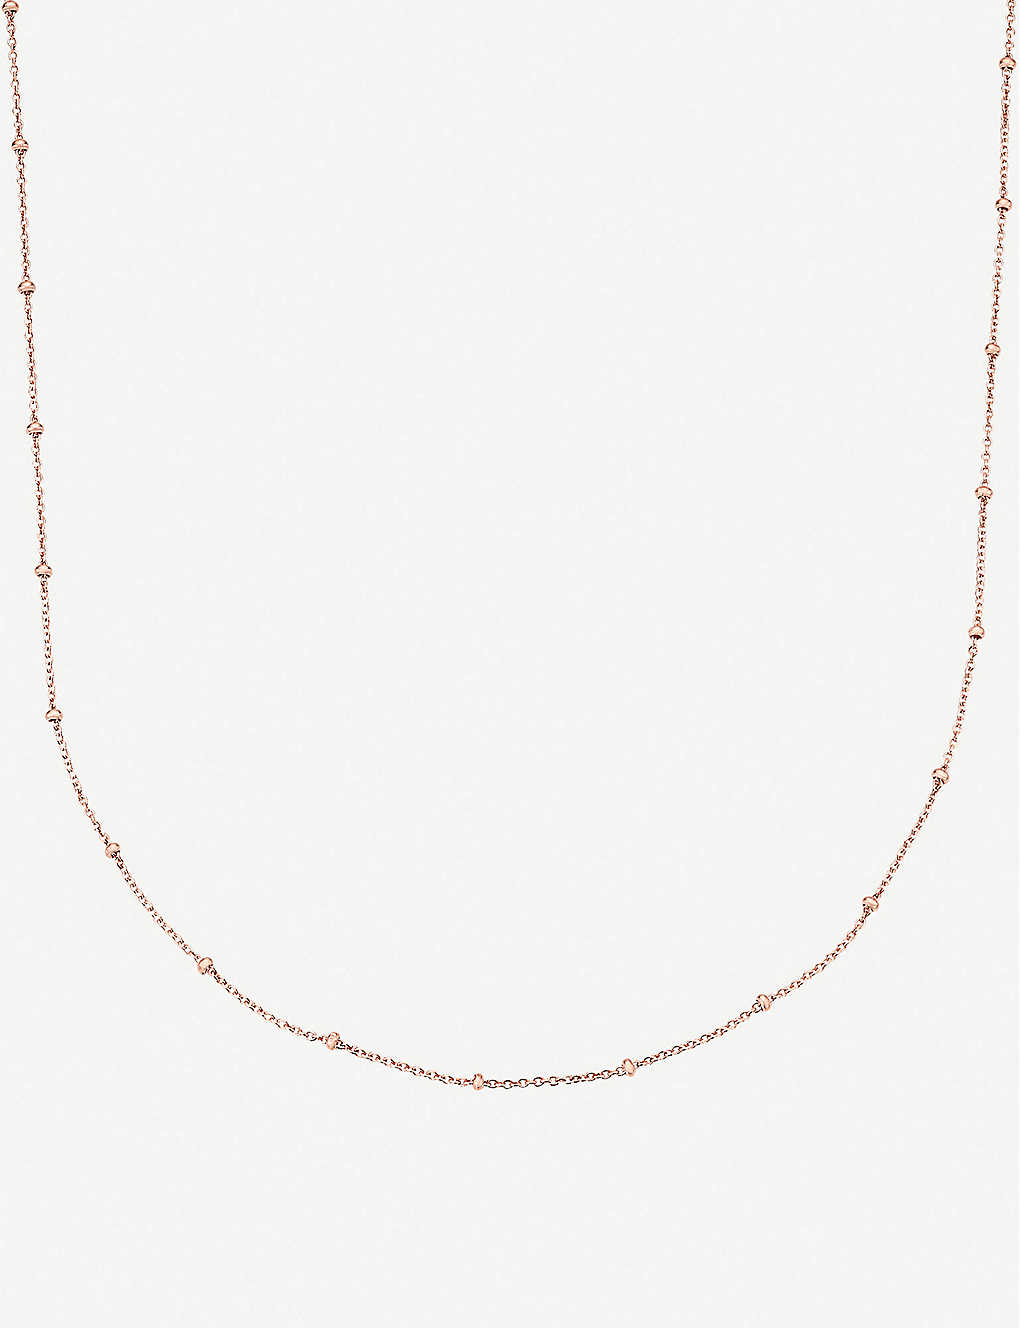 MONICA VINADER: 18ct rose-gold vermeil chain necklace